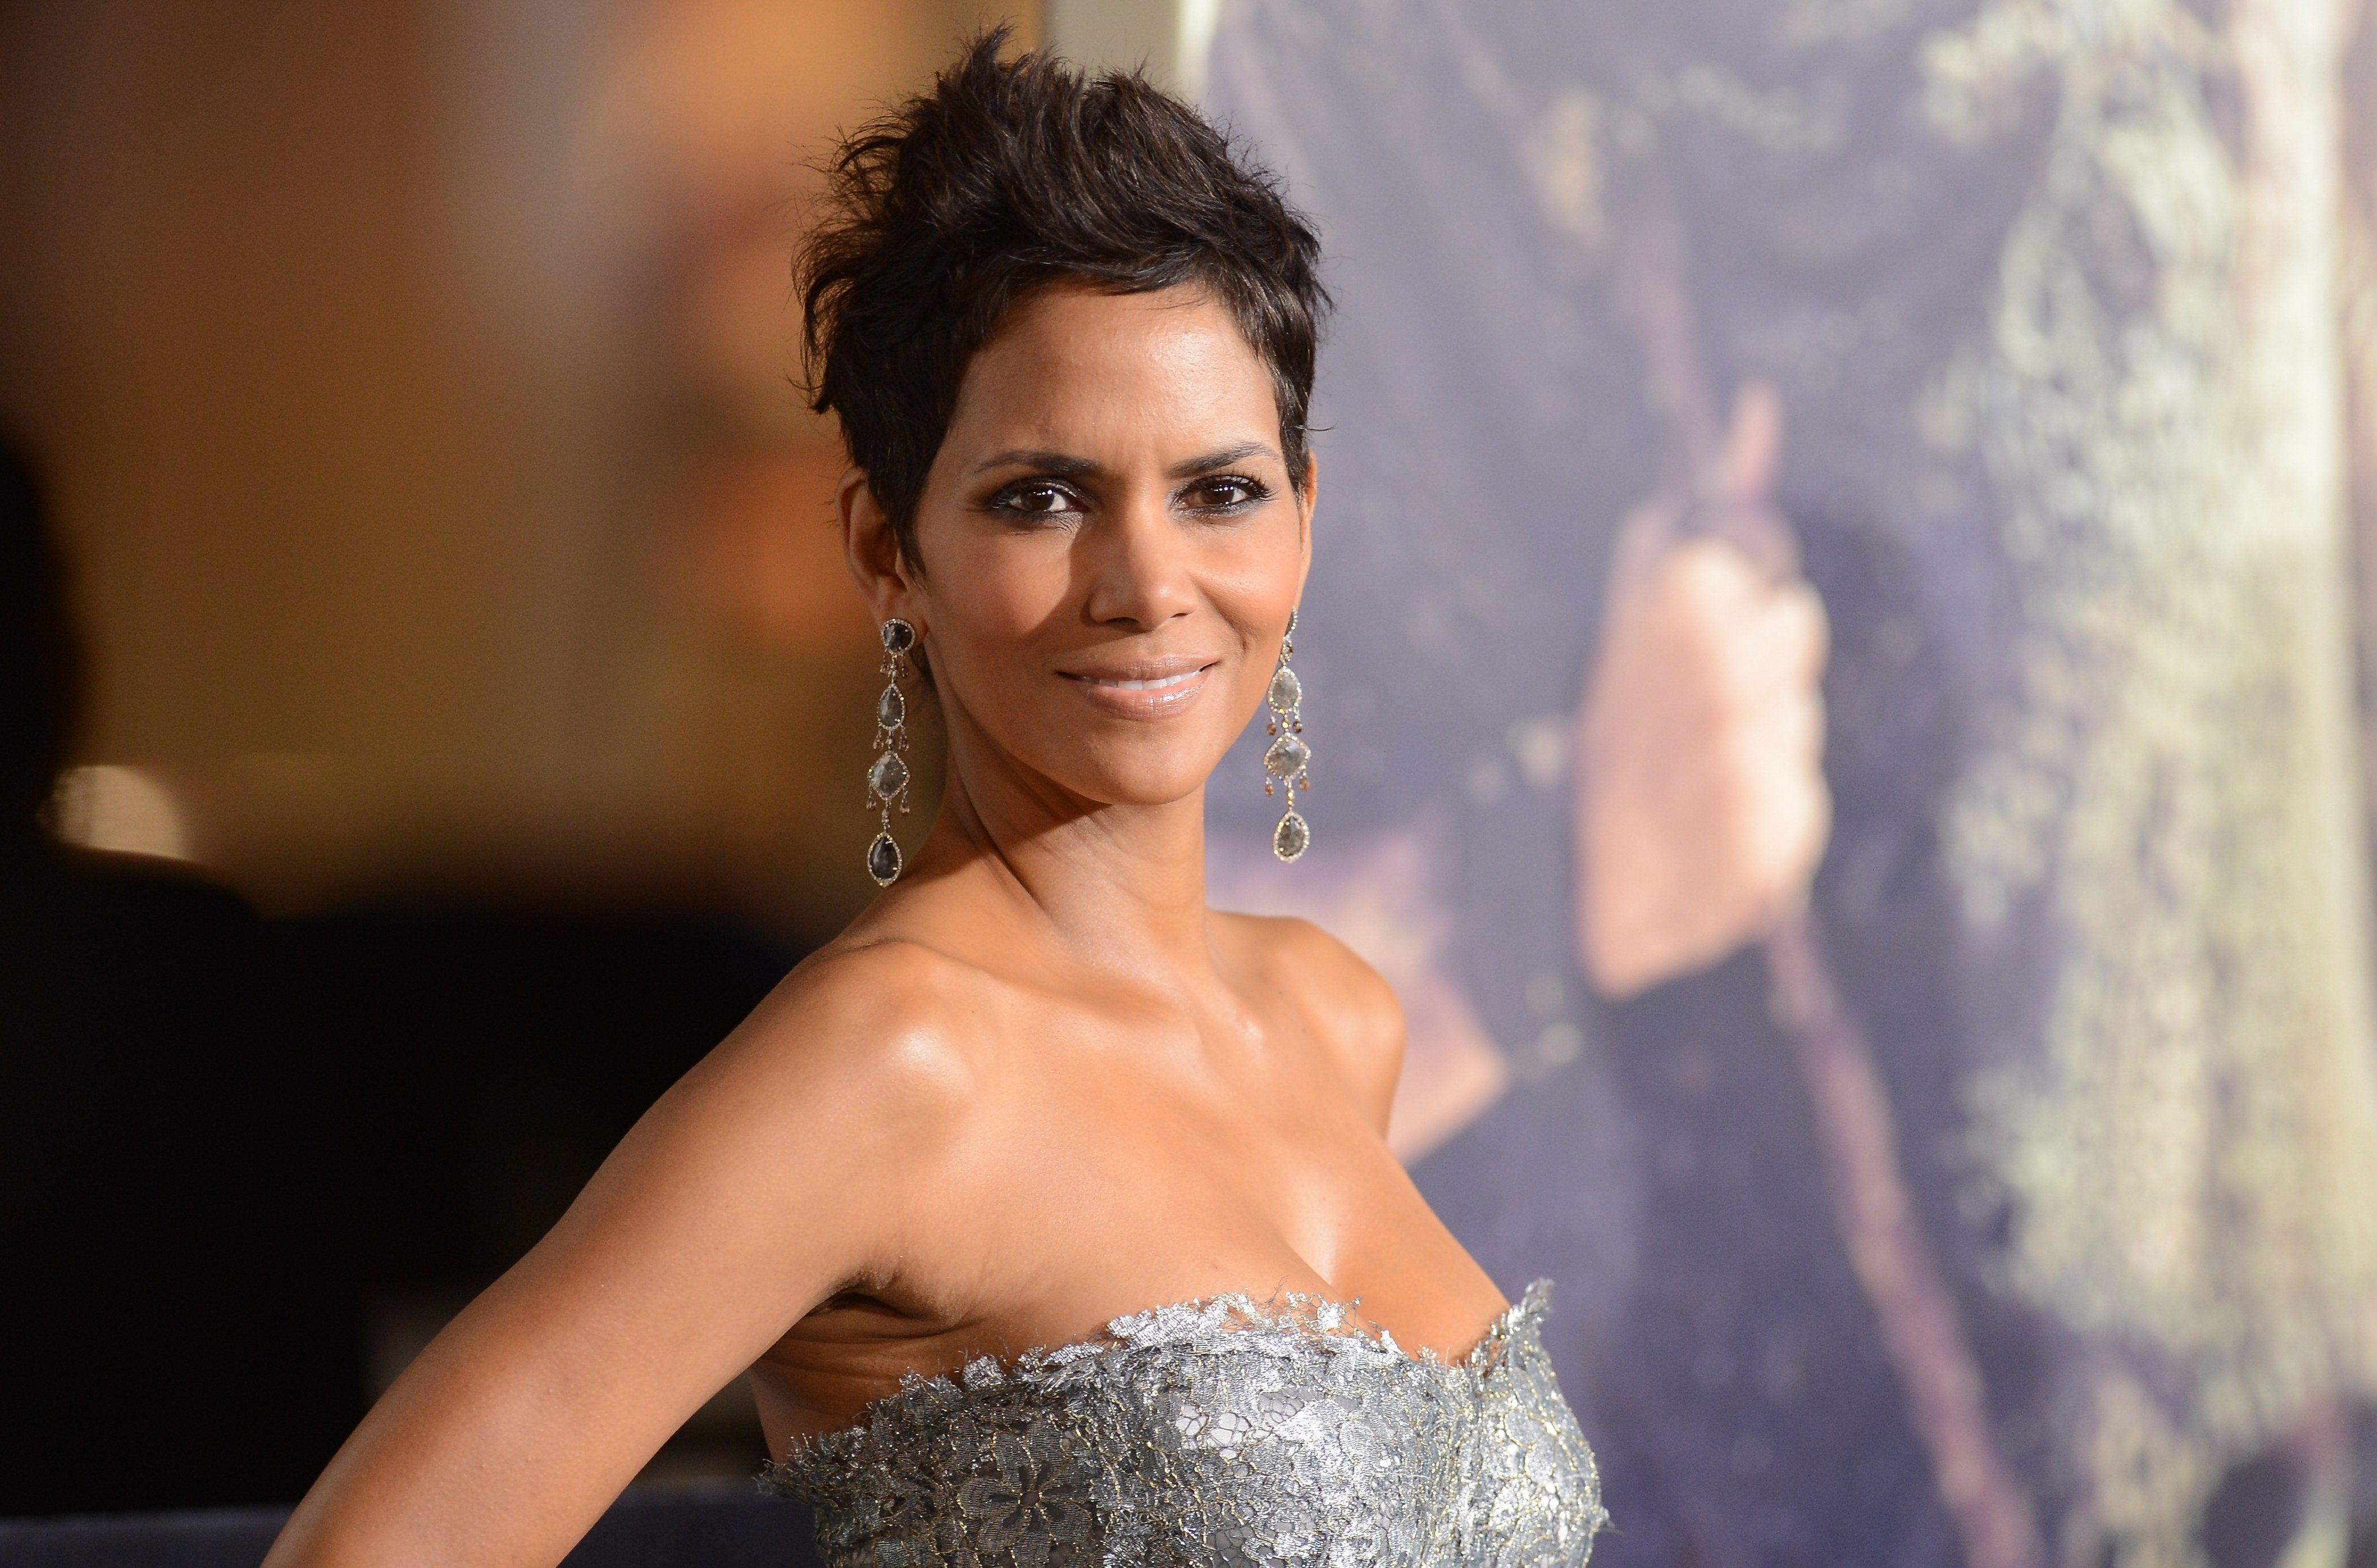 """Halle Berry at the premiere of """"Cloud Atlas"""" in 2012. 